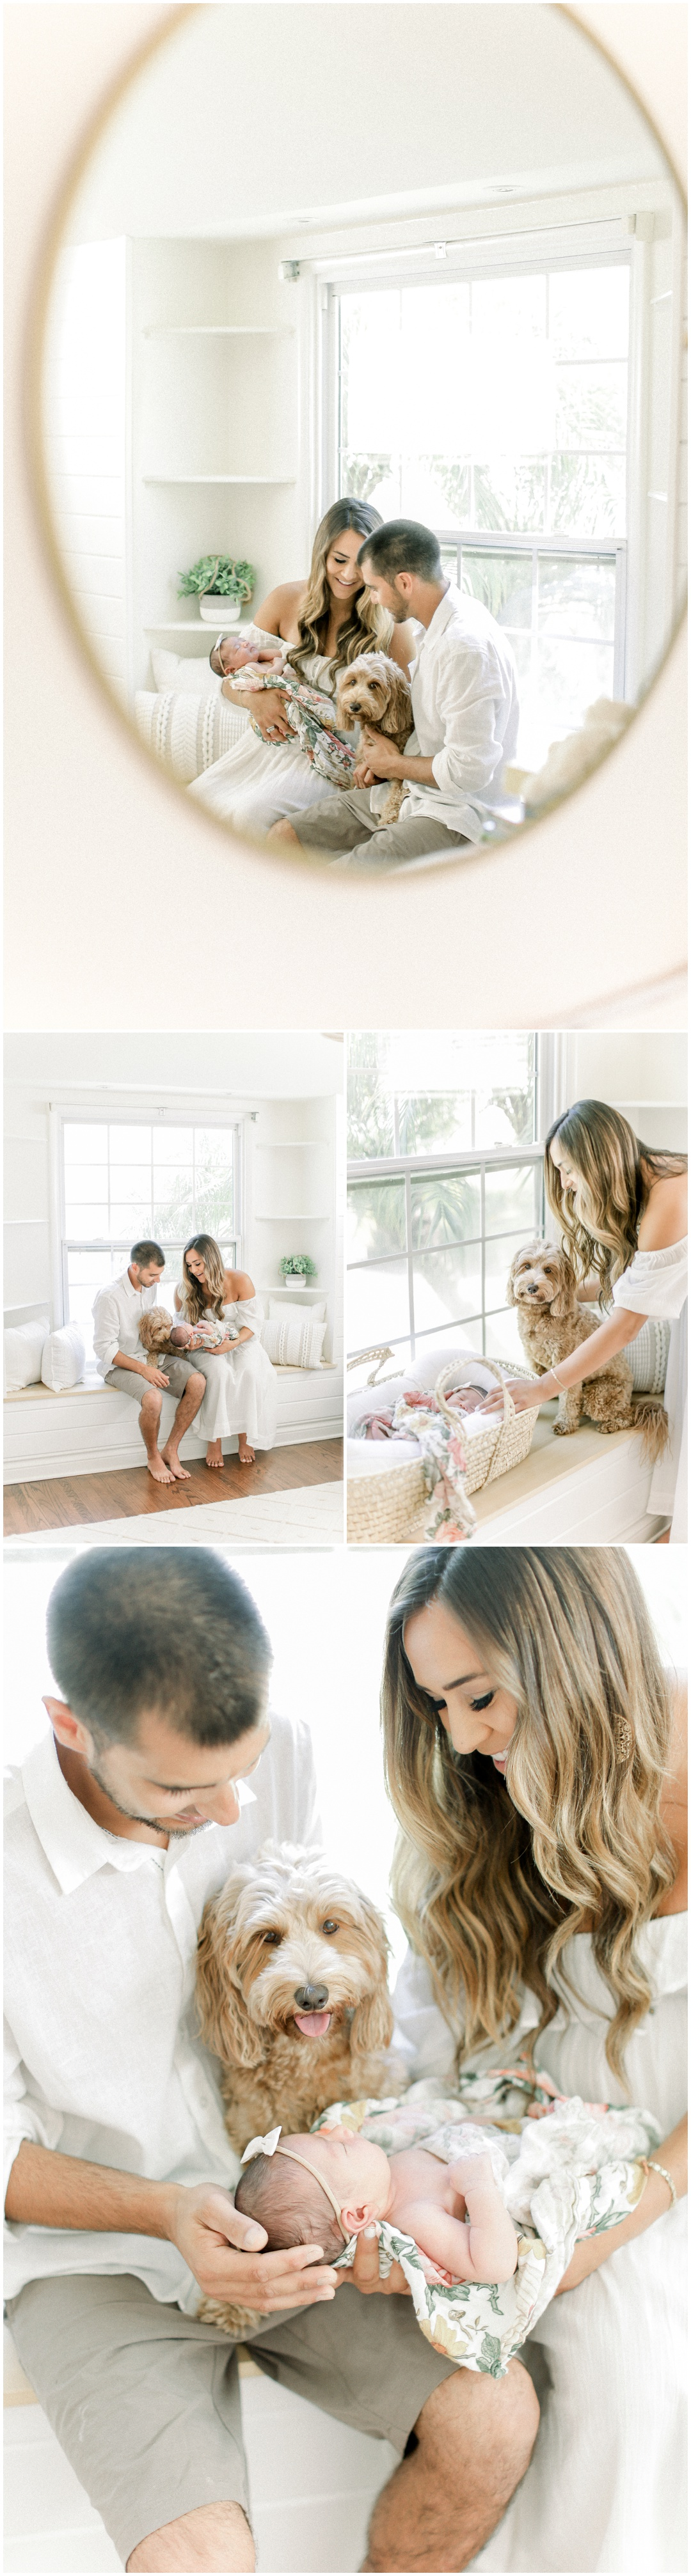 Newport_Beach_Newborn_Light_Airy_Natural_Photographer_Newport_Beach_Photographer_Orange_County_Family_Photographer_Cori_Kleckner_Photography_Newport_Beach_Newborn_Photographer_Taylor_Colacion_Family__4244.jpg